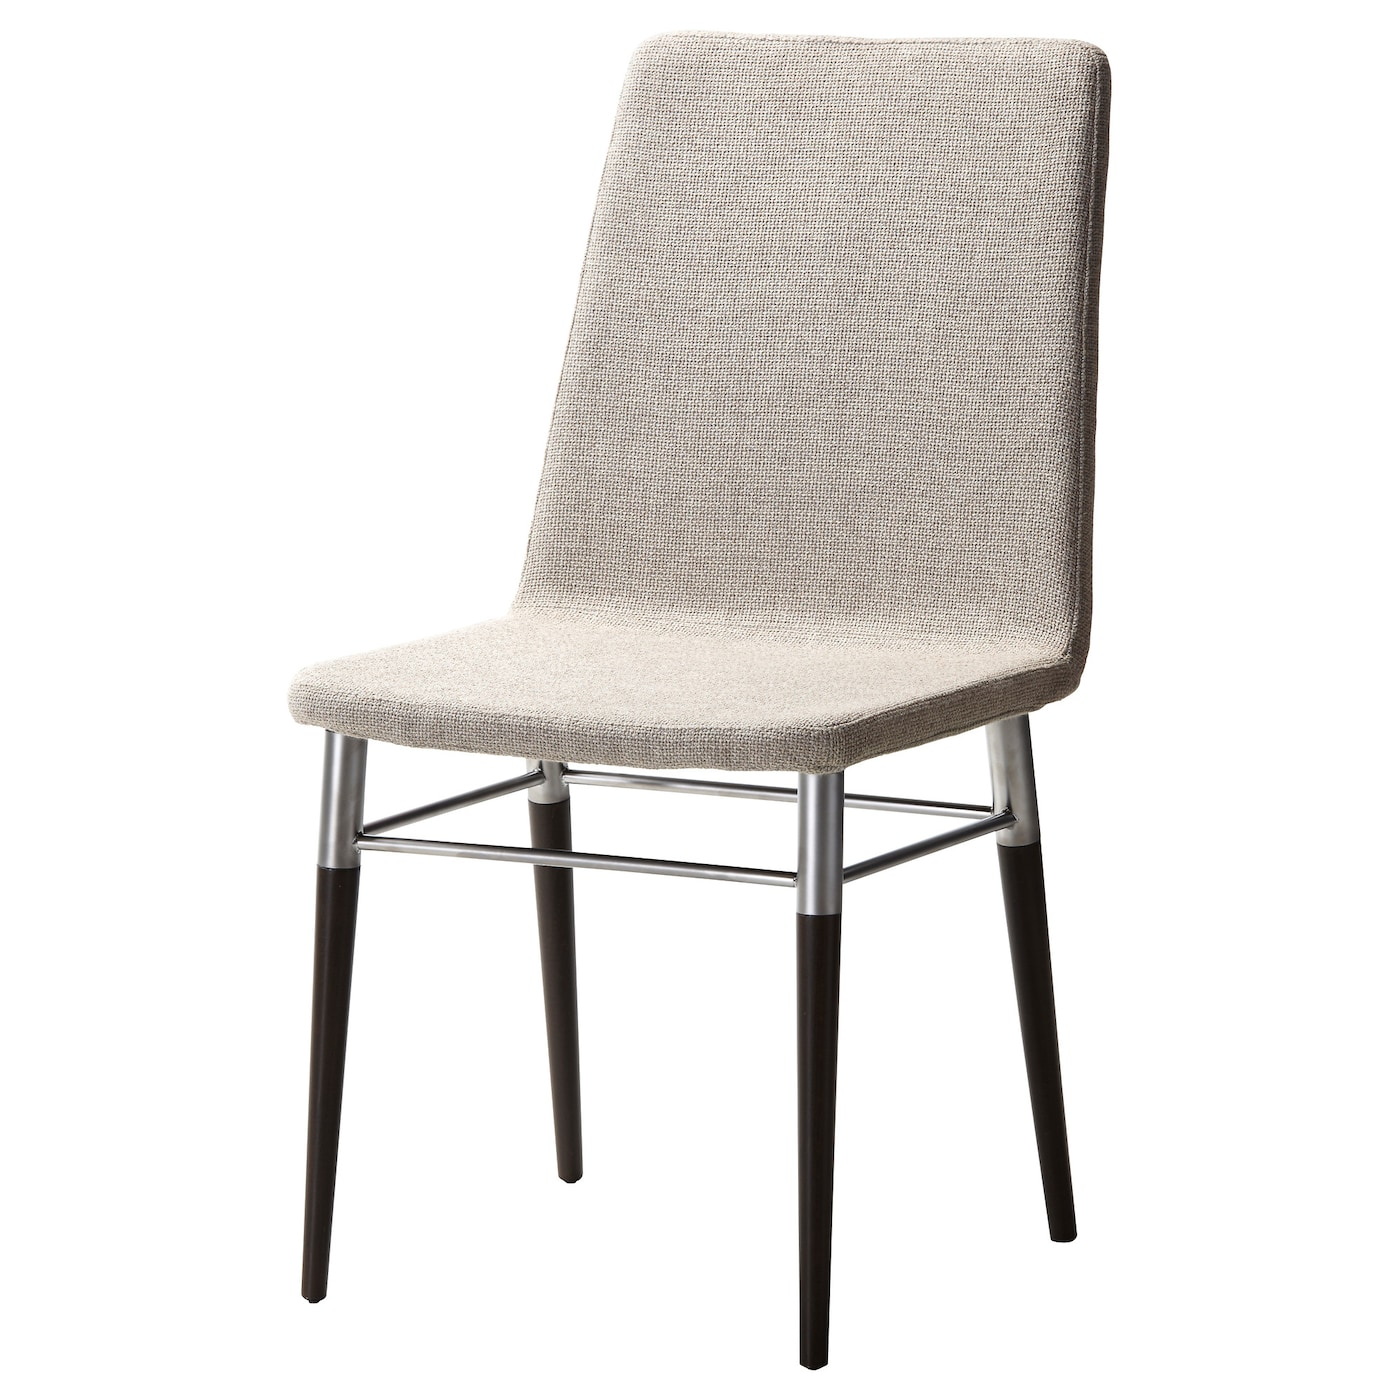 IKEA PREBEN chair You sit fortably thanks to the padded seat